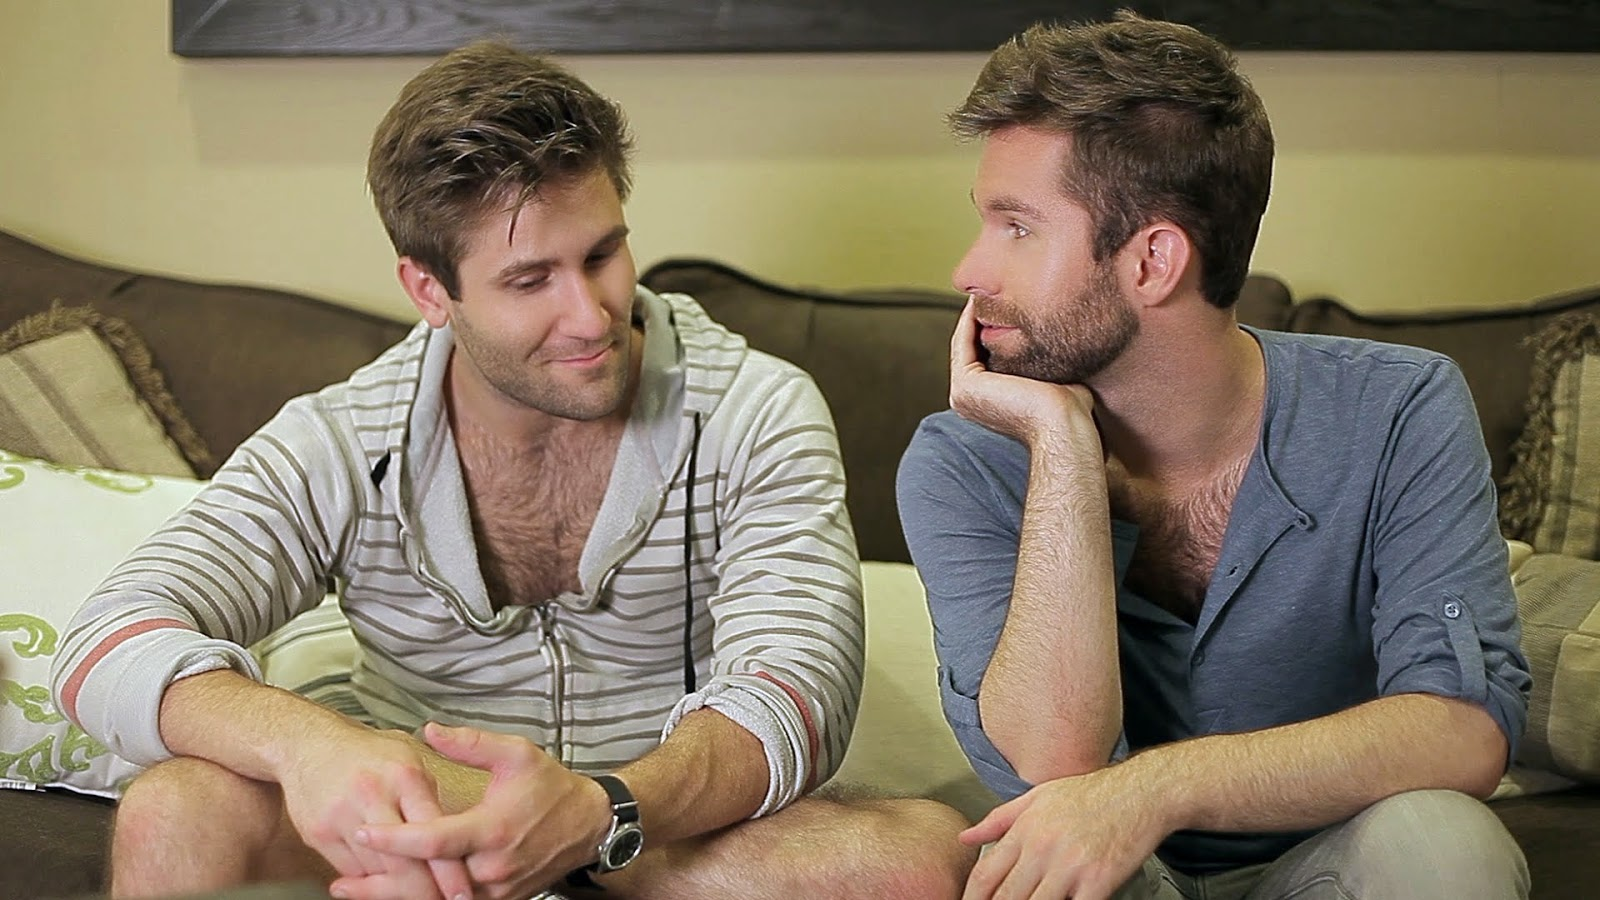 homemade gay twink movies